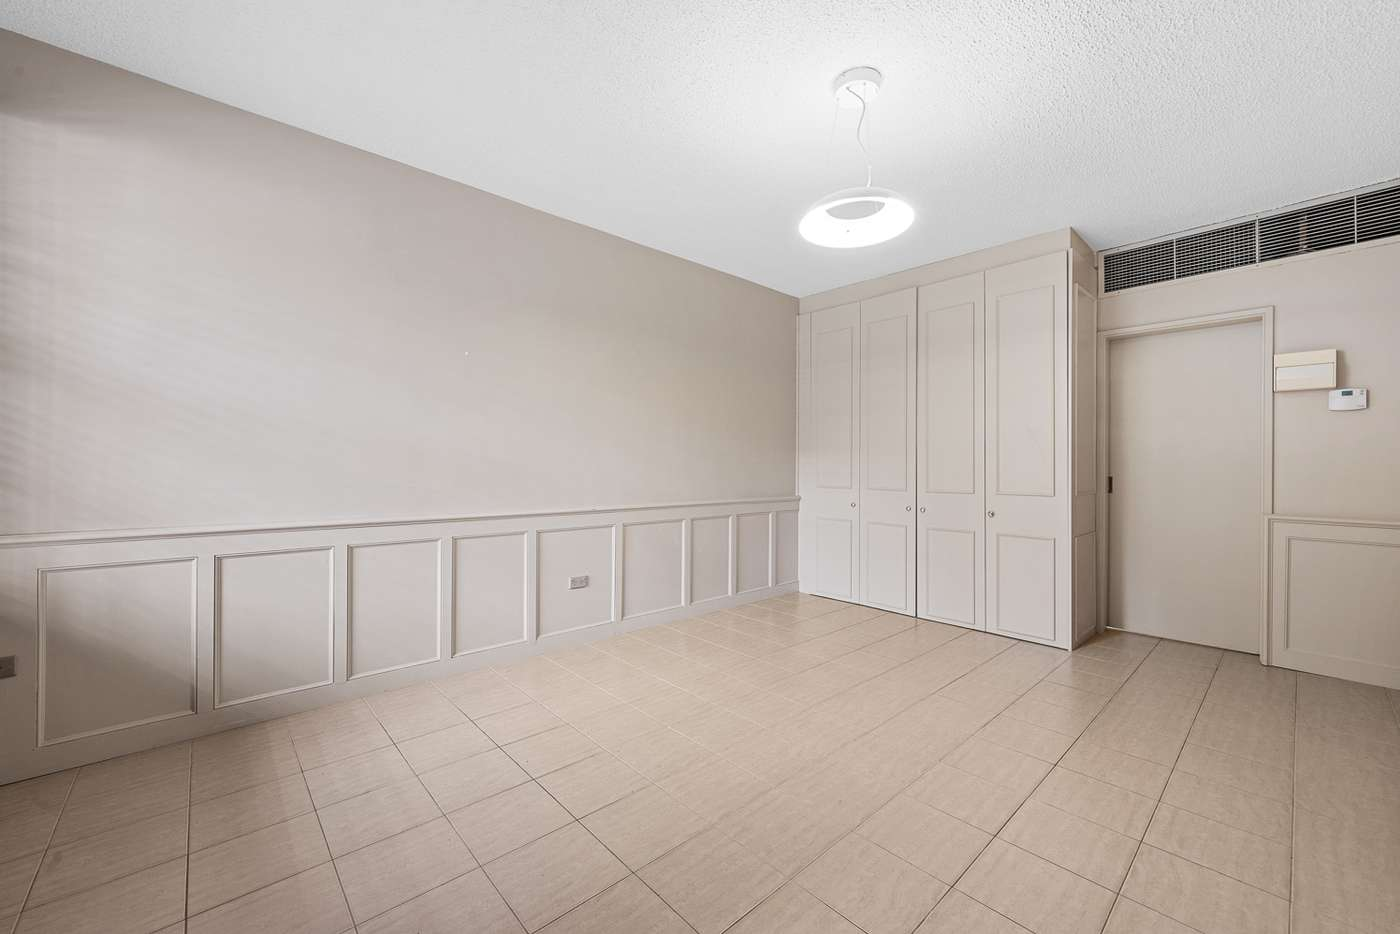 Main view of Homely studio listing, 135/51 Rathdowne Street, Carlton VIC 3053